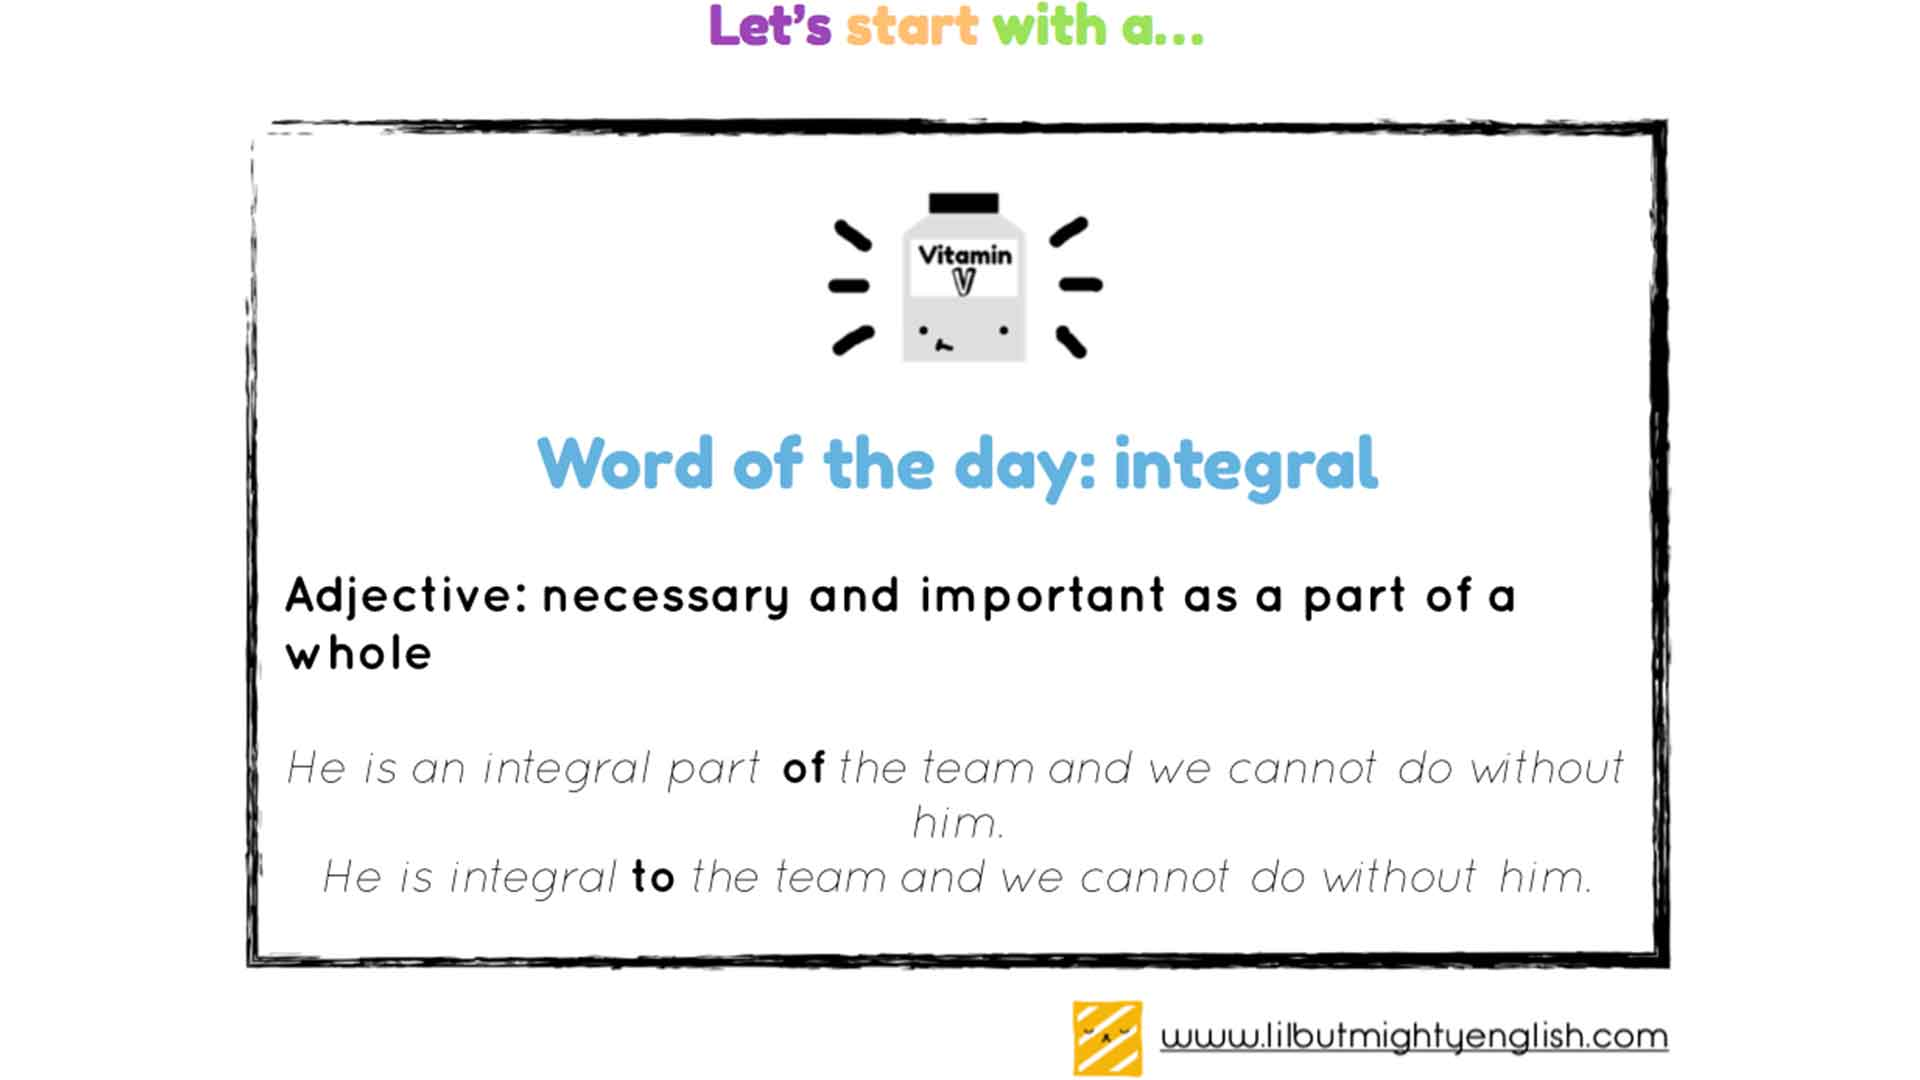 Word of the day: Integral